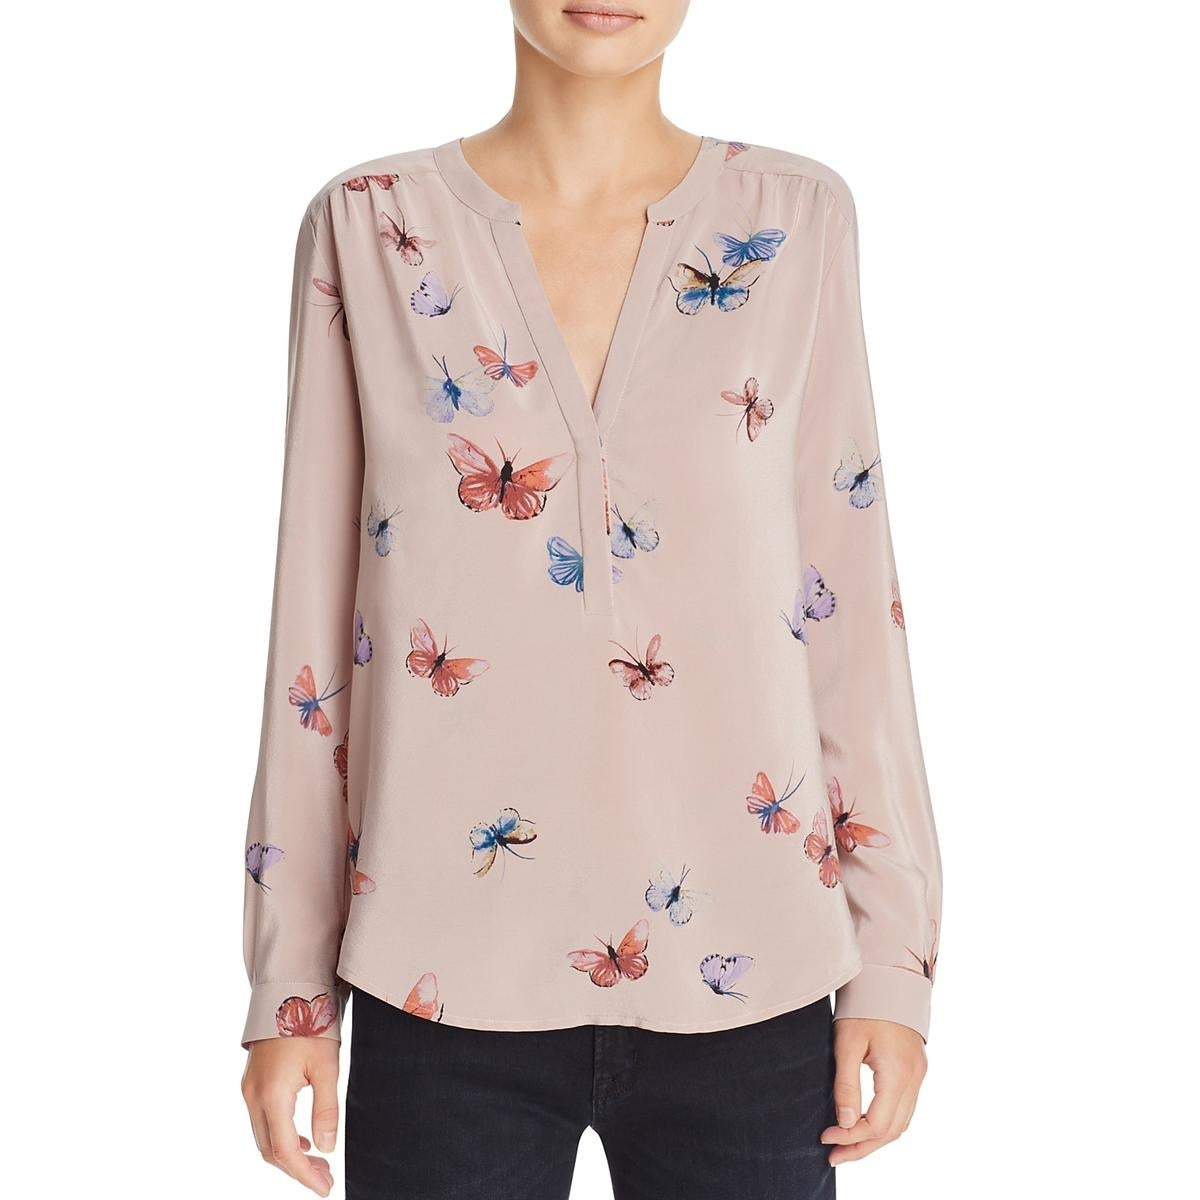 d3c8f16d0a38b Shop Joie Womens Blouse Silk Butterfly Print - Free Shipping Today -  Overstock - 18736770